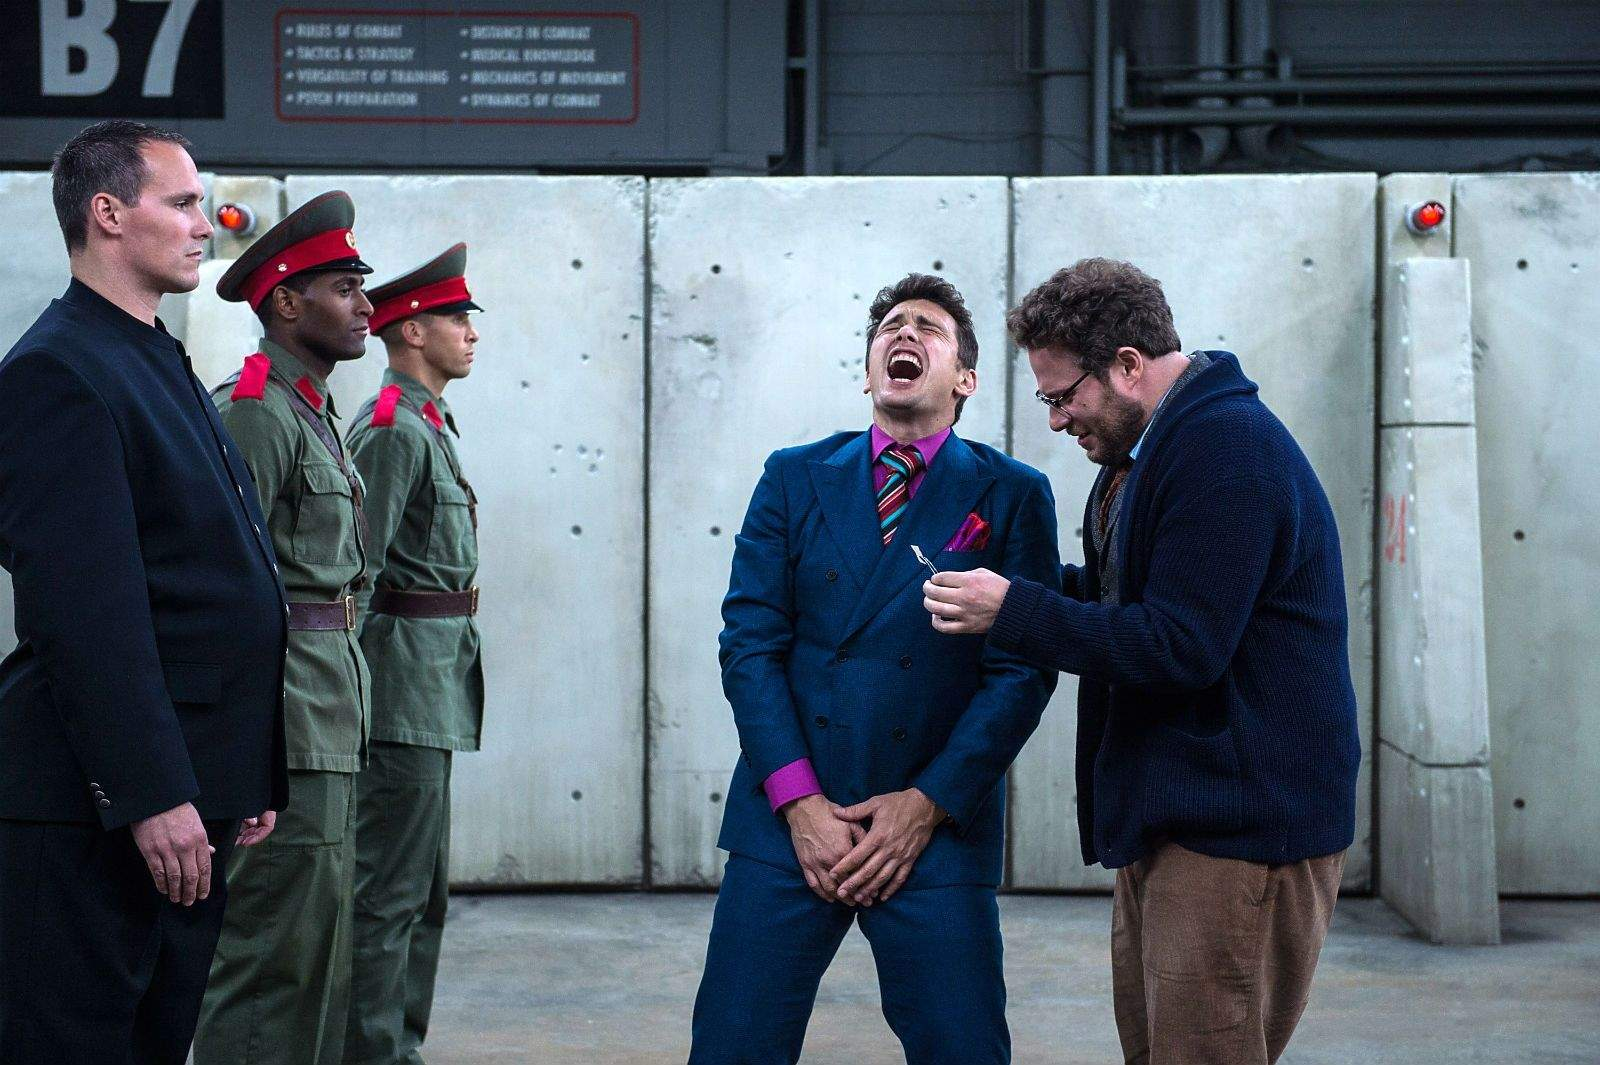 Bust terrorists in the balls by seeing The Interview. Photo © 2014 CTMG